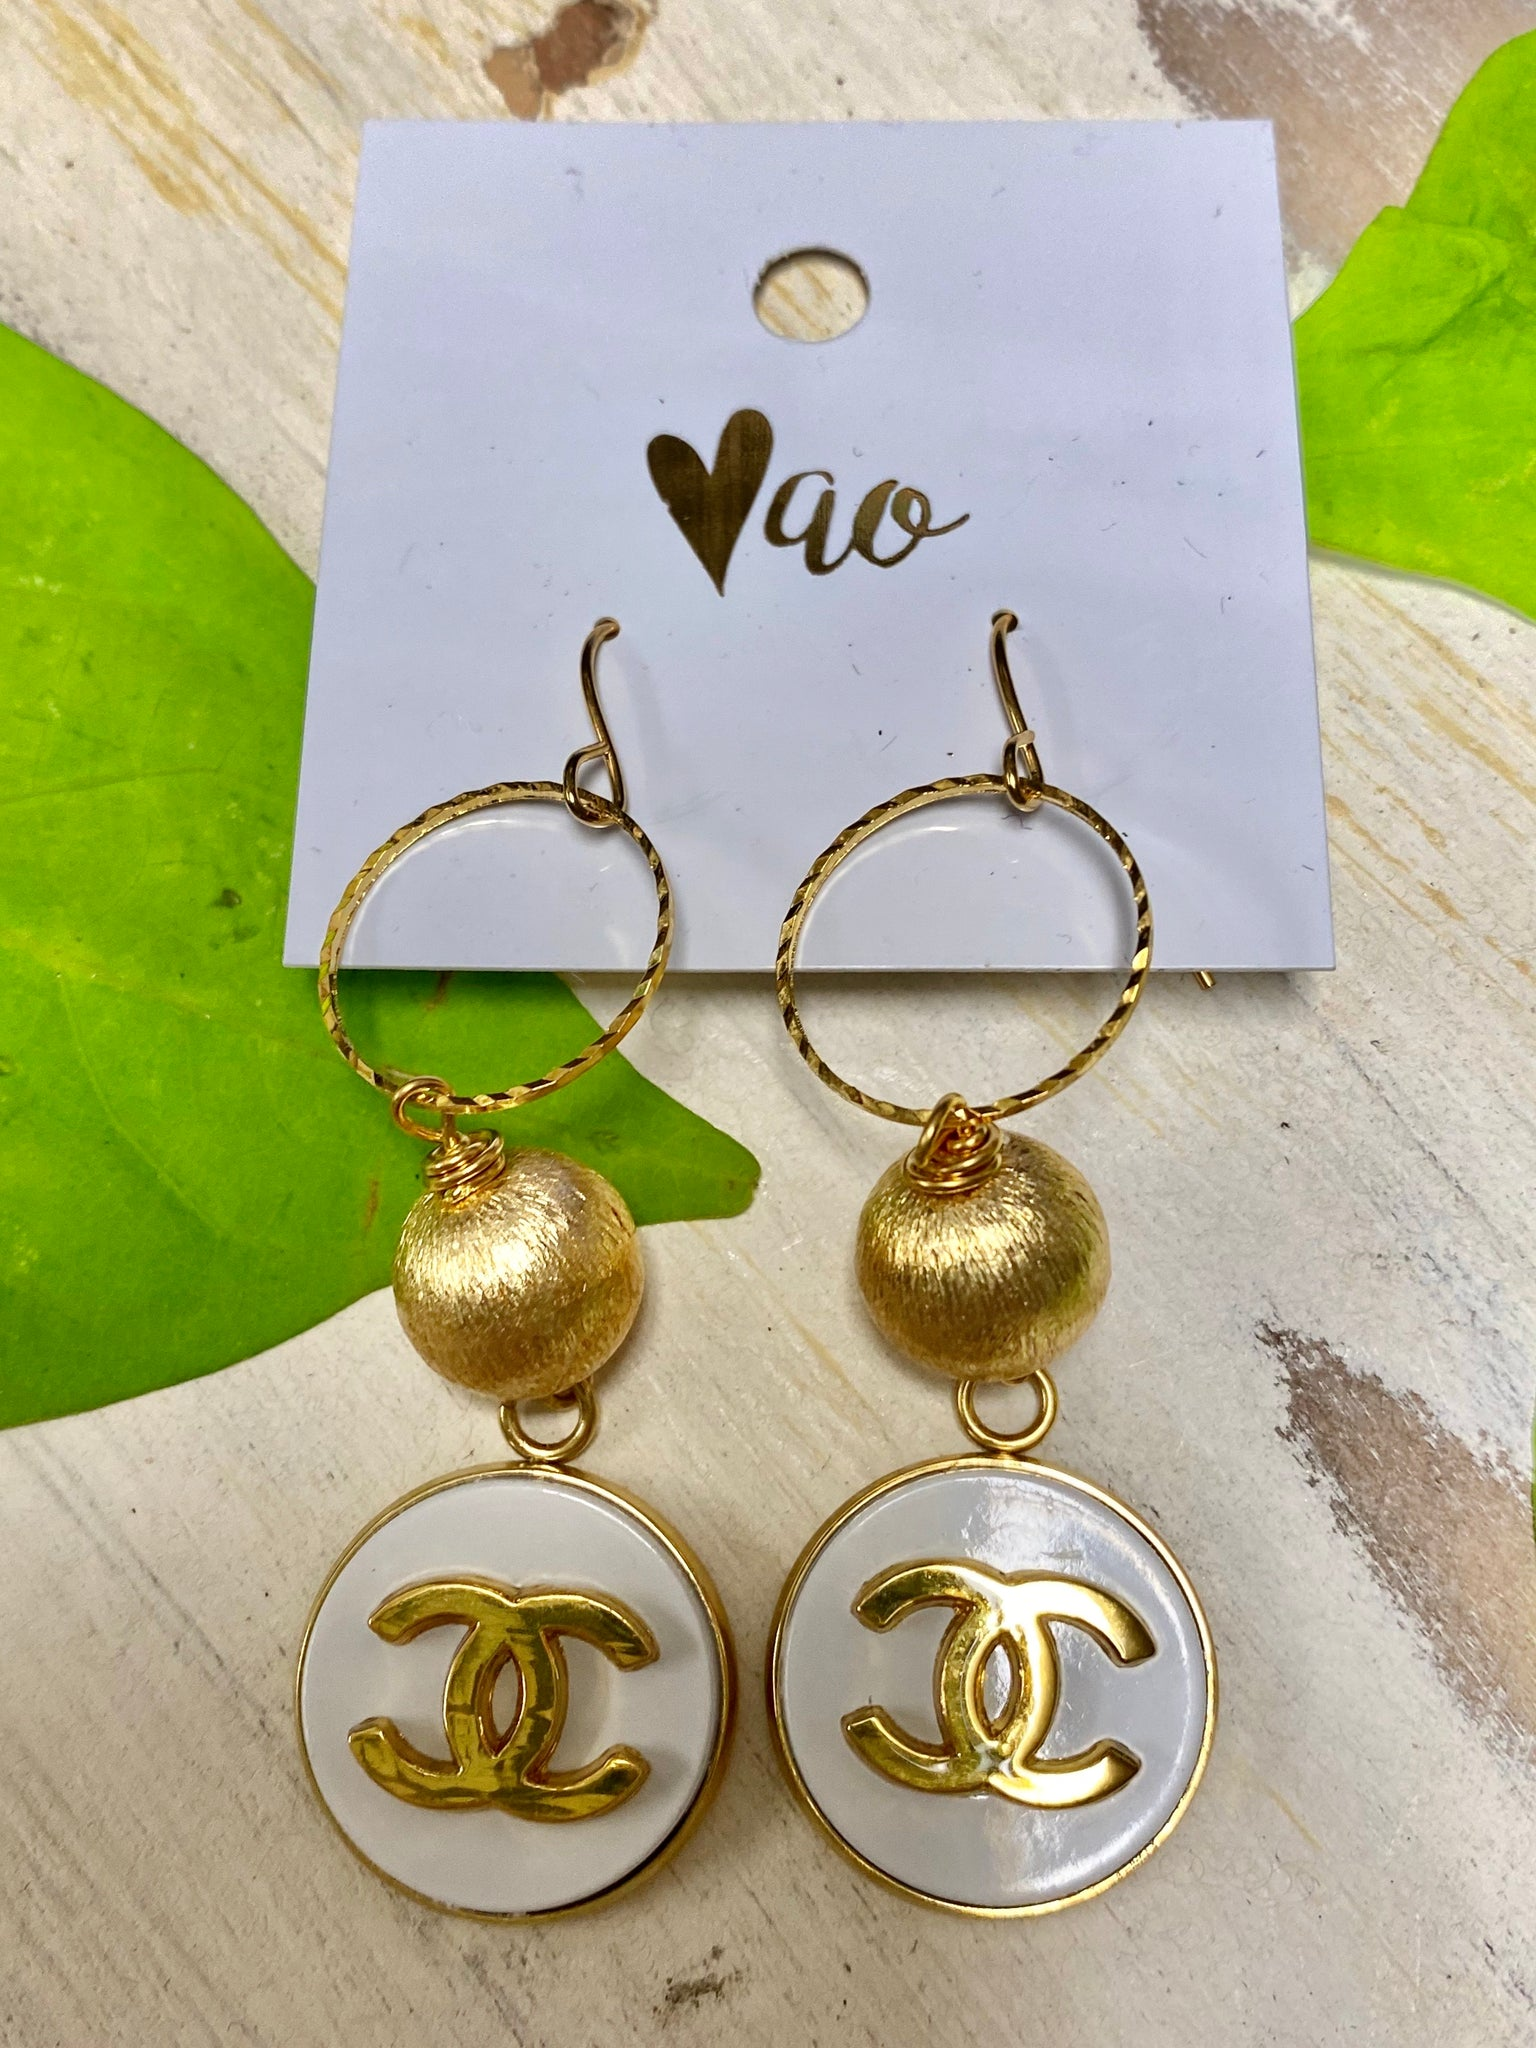 Vintage Chanel Button Hook Earrings With Gold Ball & White & Gold Button